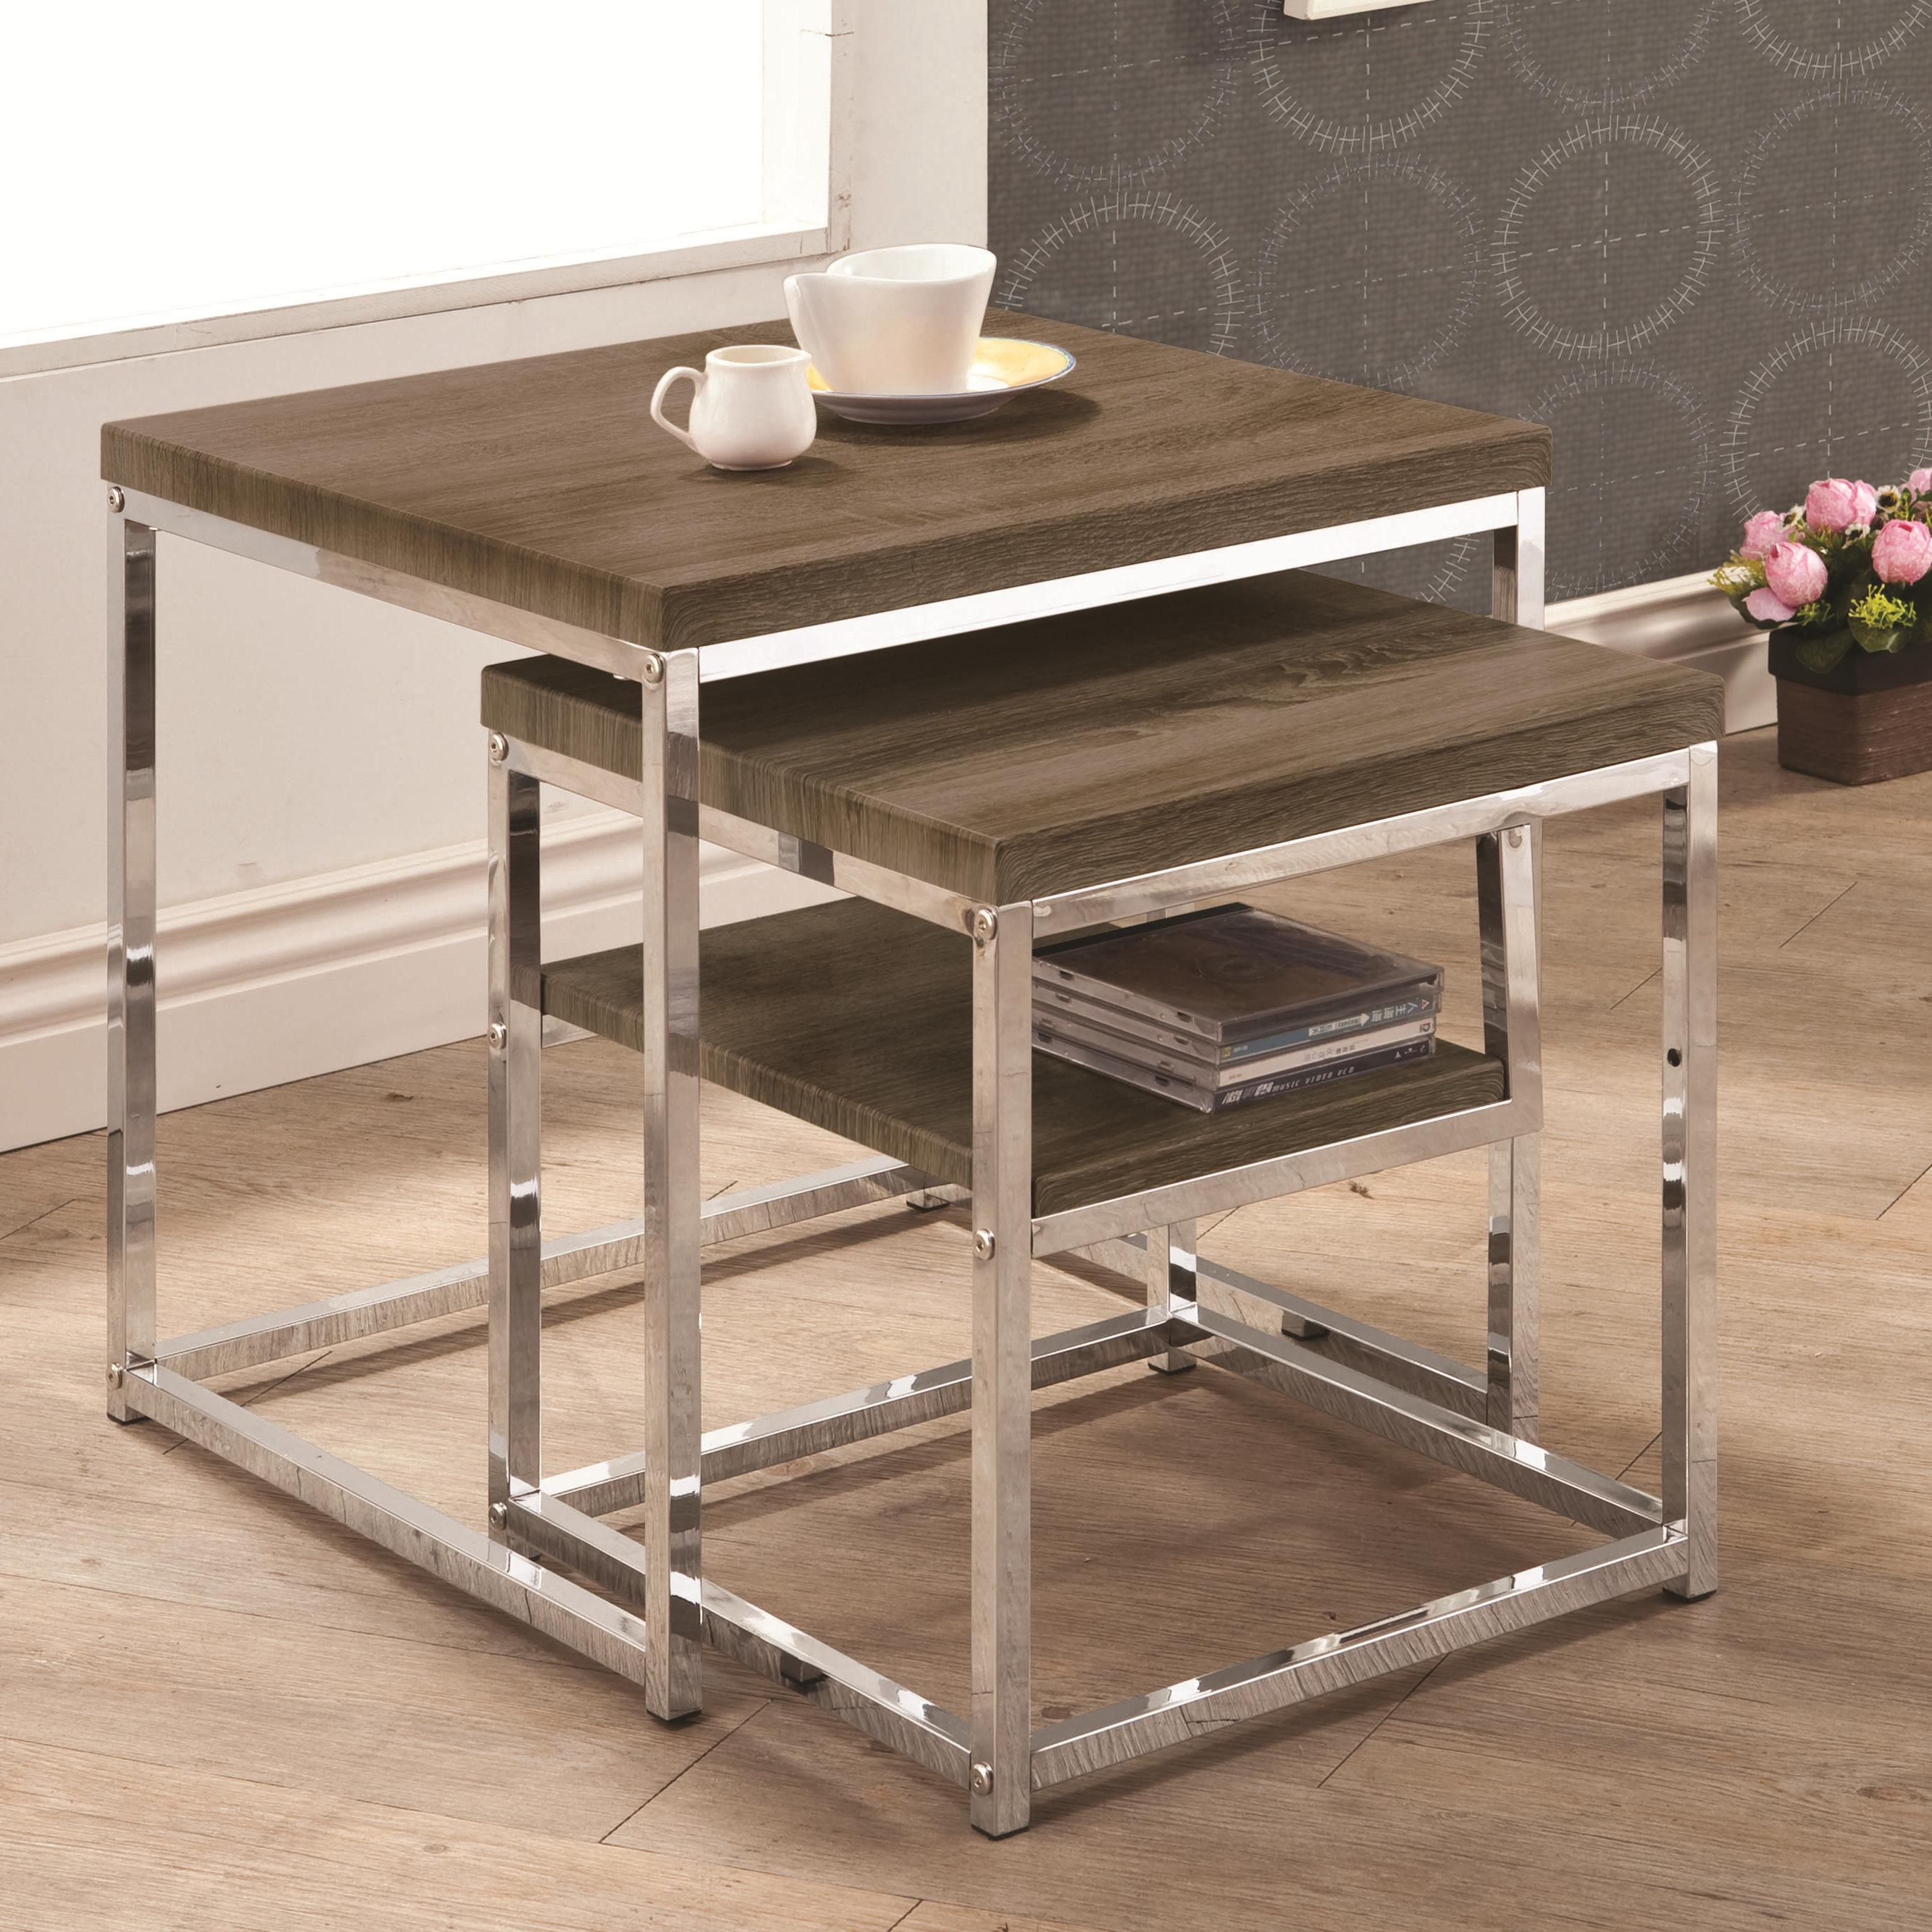 Nesting tables contemporary table w weathered